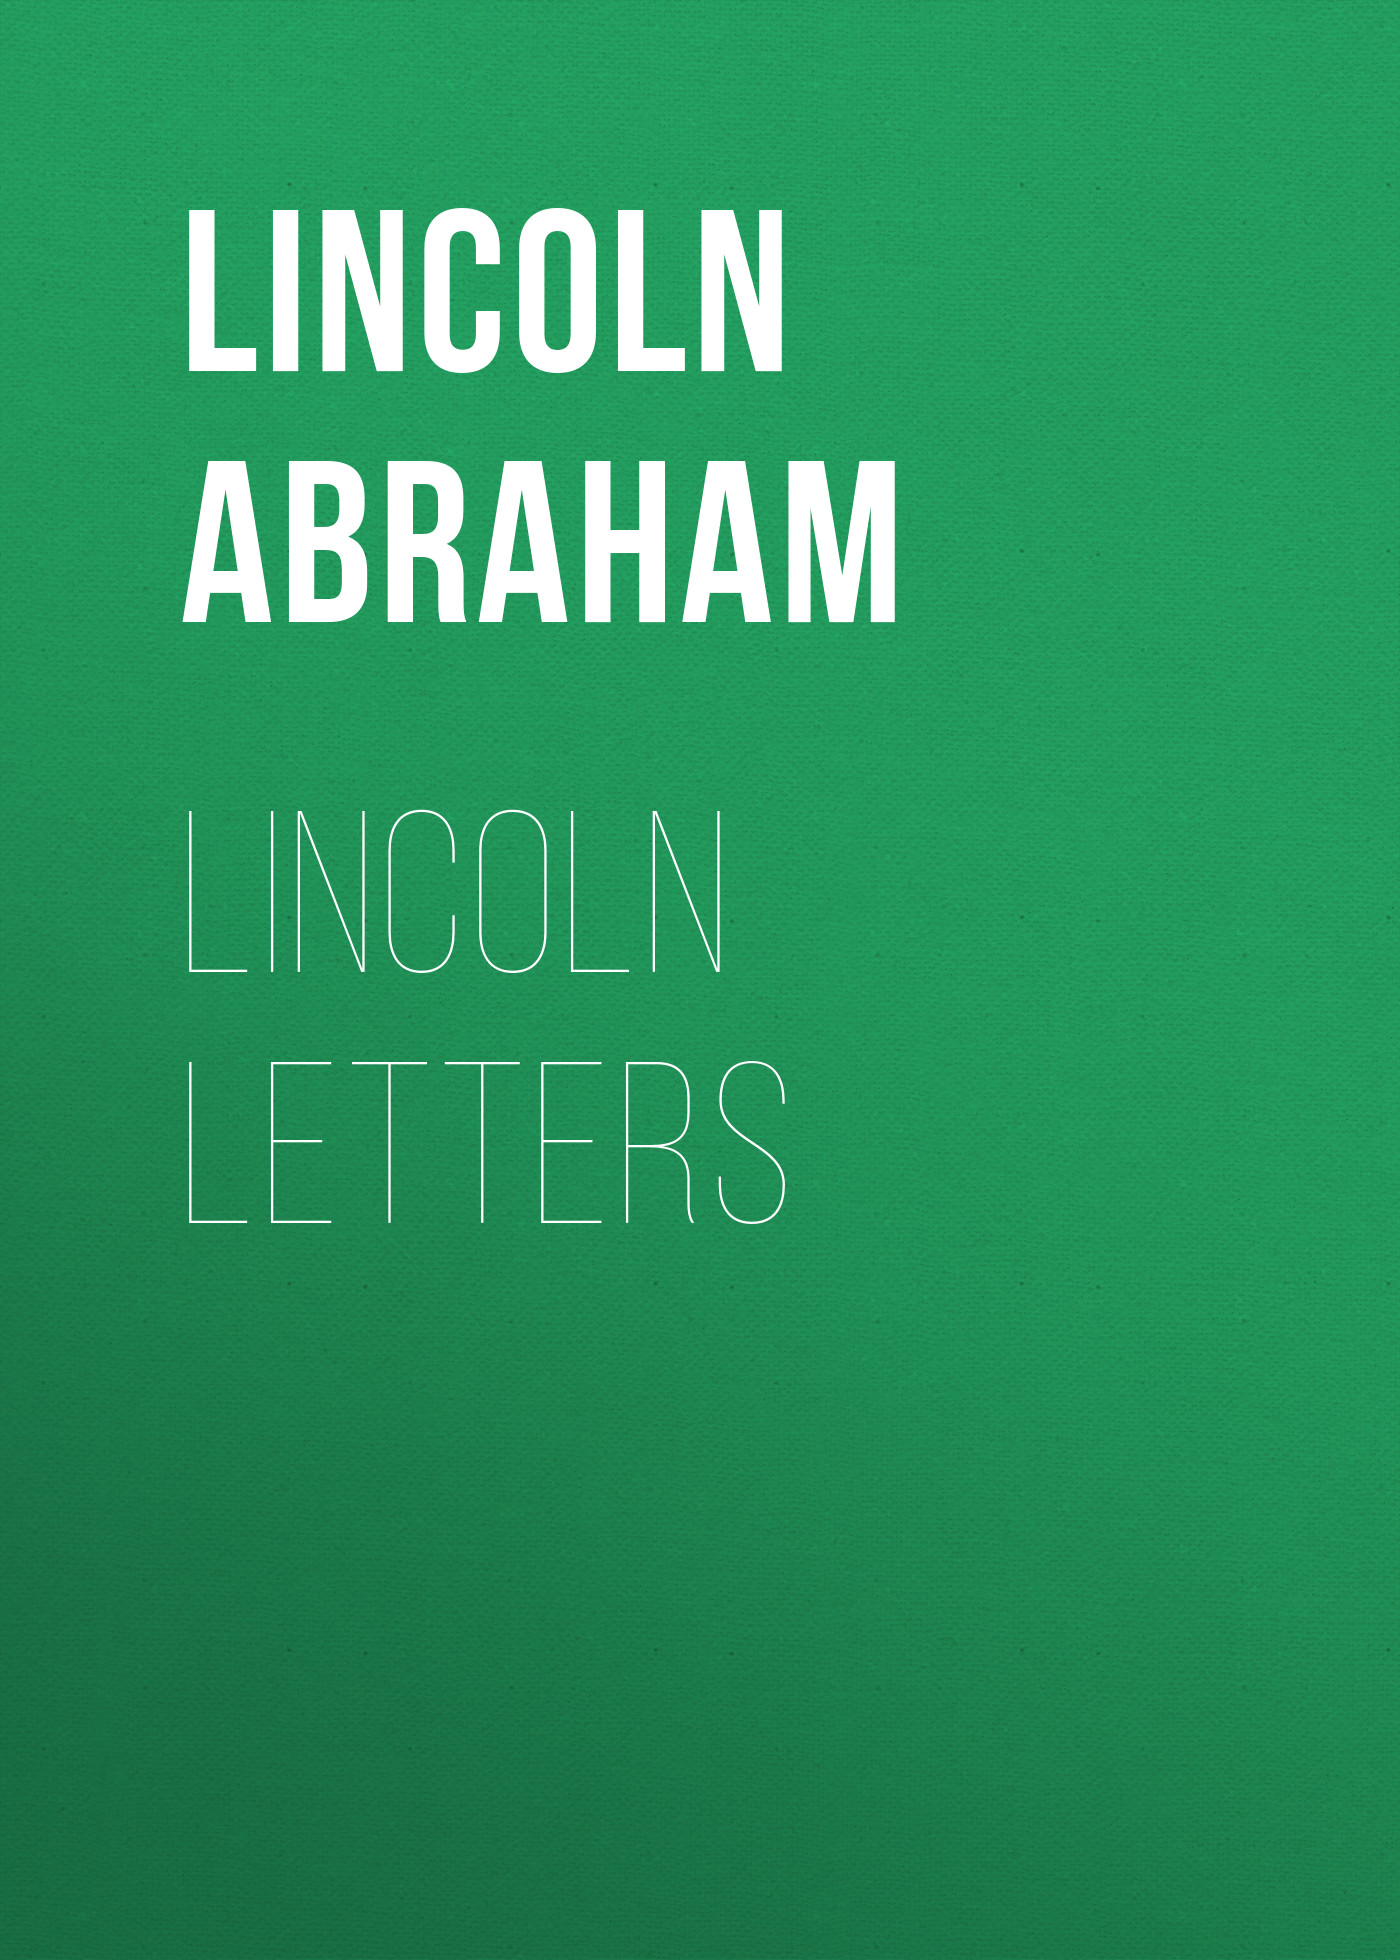 Lincoln Abraham Lincoln Letters open secret